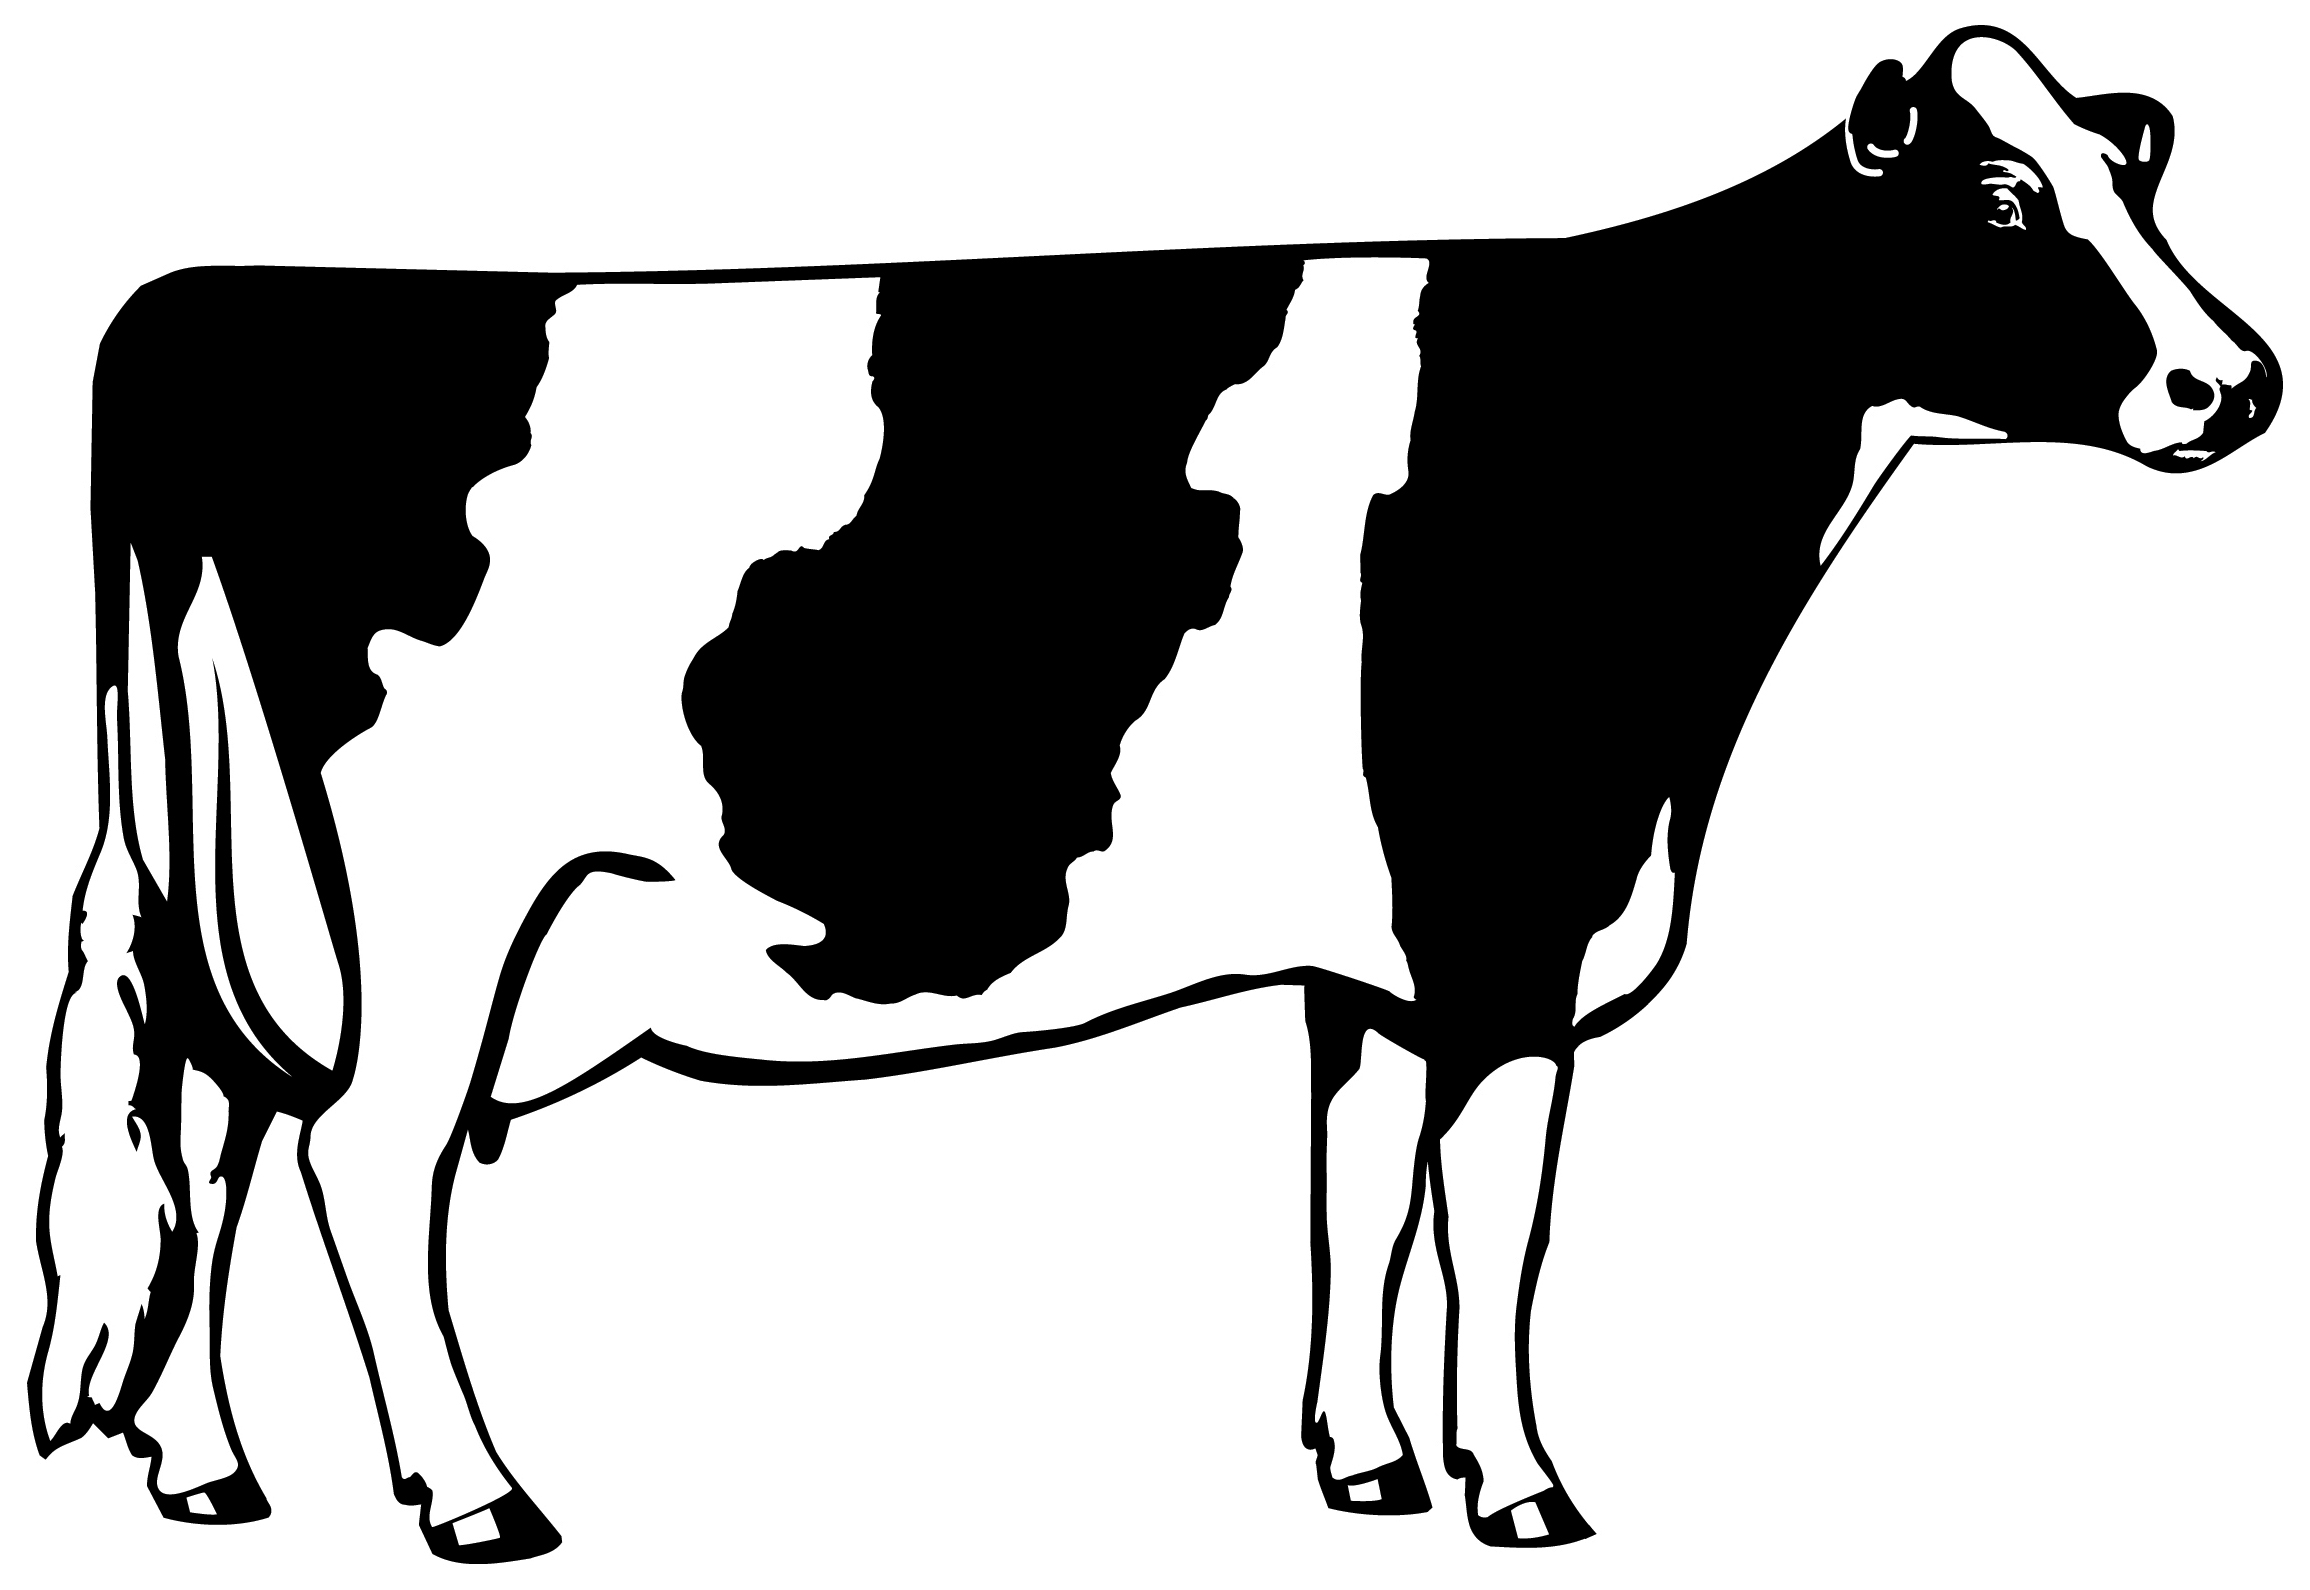 cattle silhouette clip art at getdrawings com free for personal rh getdrawings com clip art cows free clipart newspaper